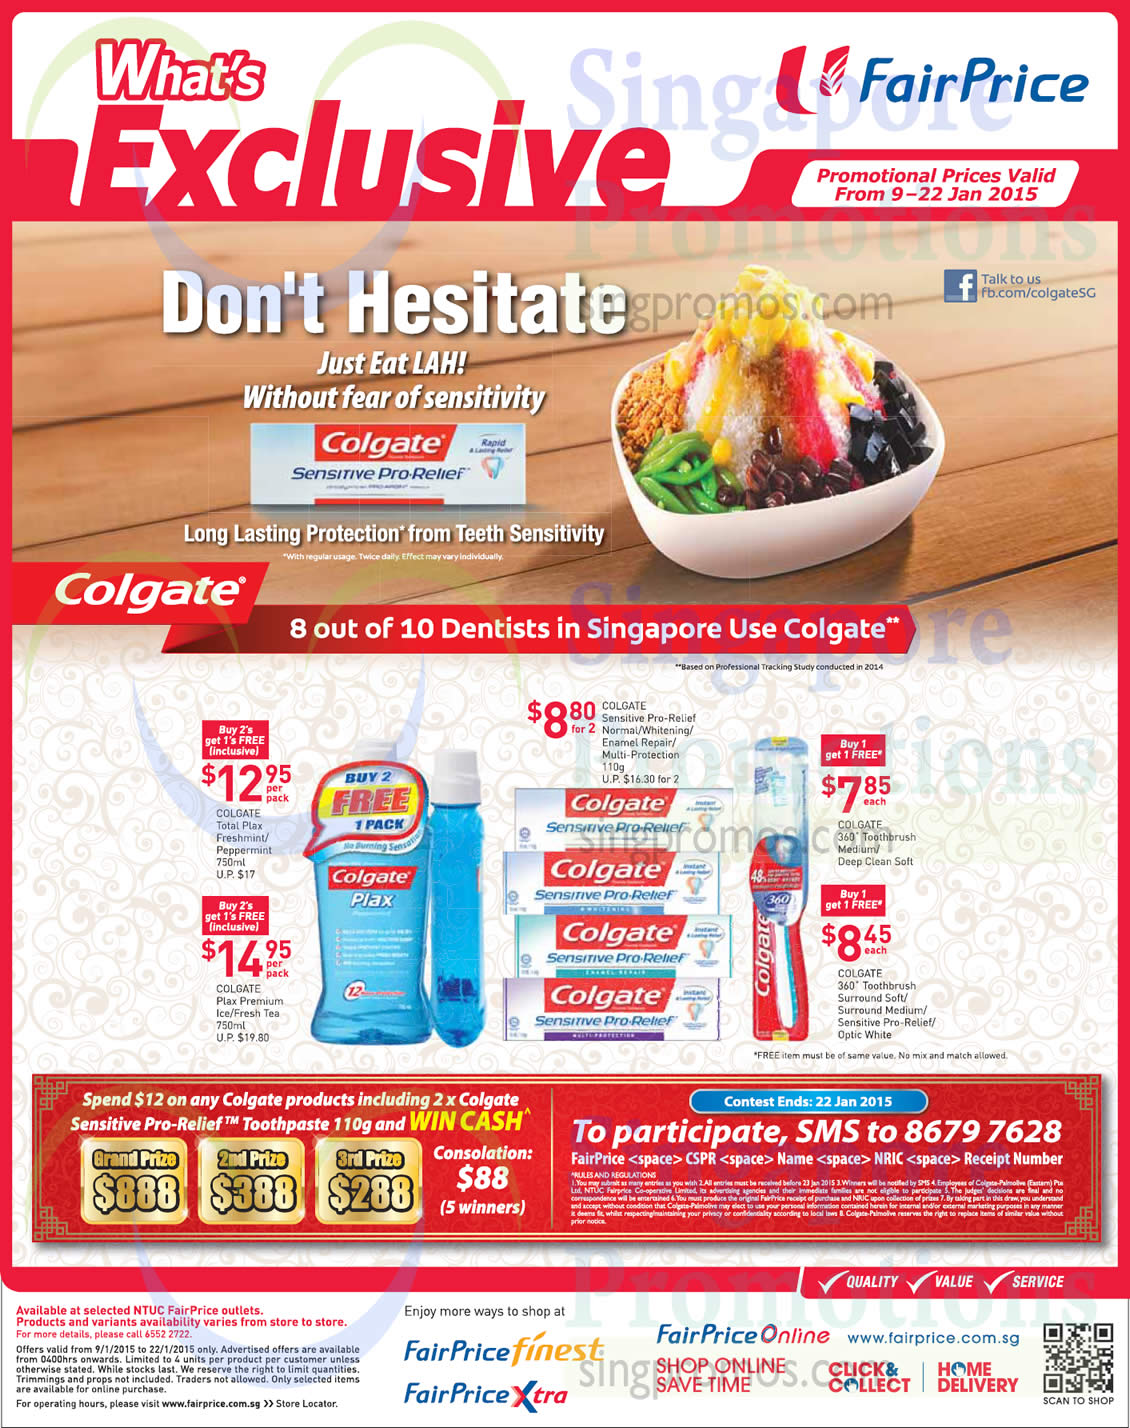 Colgate Coupons. 2. You can get Colgate toothpaste for free at Walgreens, Rite Aid and CVS by combining $1 off coupons with frequent in-store promotions. Mouthwash coupons can be as high as $2 off so look for the BOGO free deals for this item.